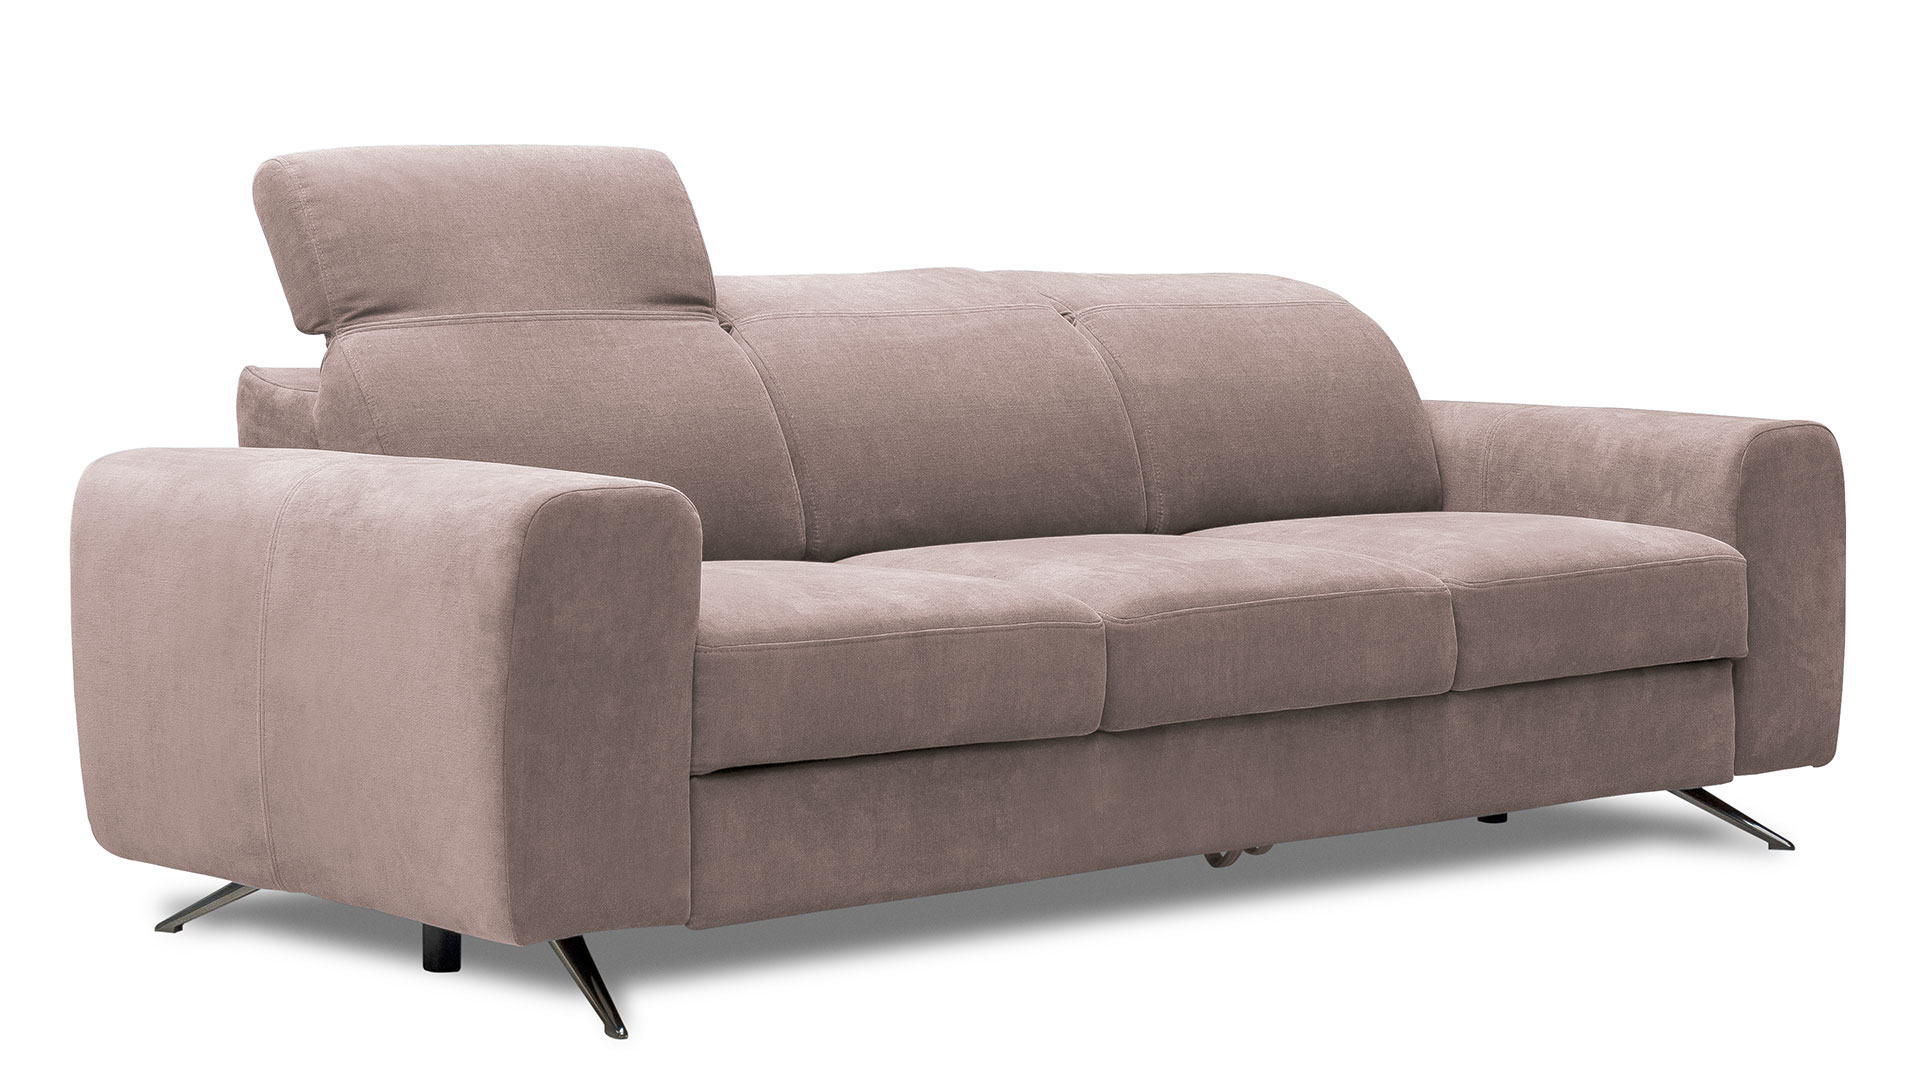 Sofa with sleeping function Mocca